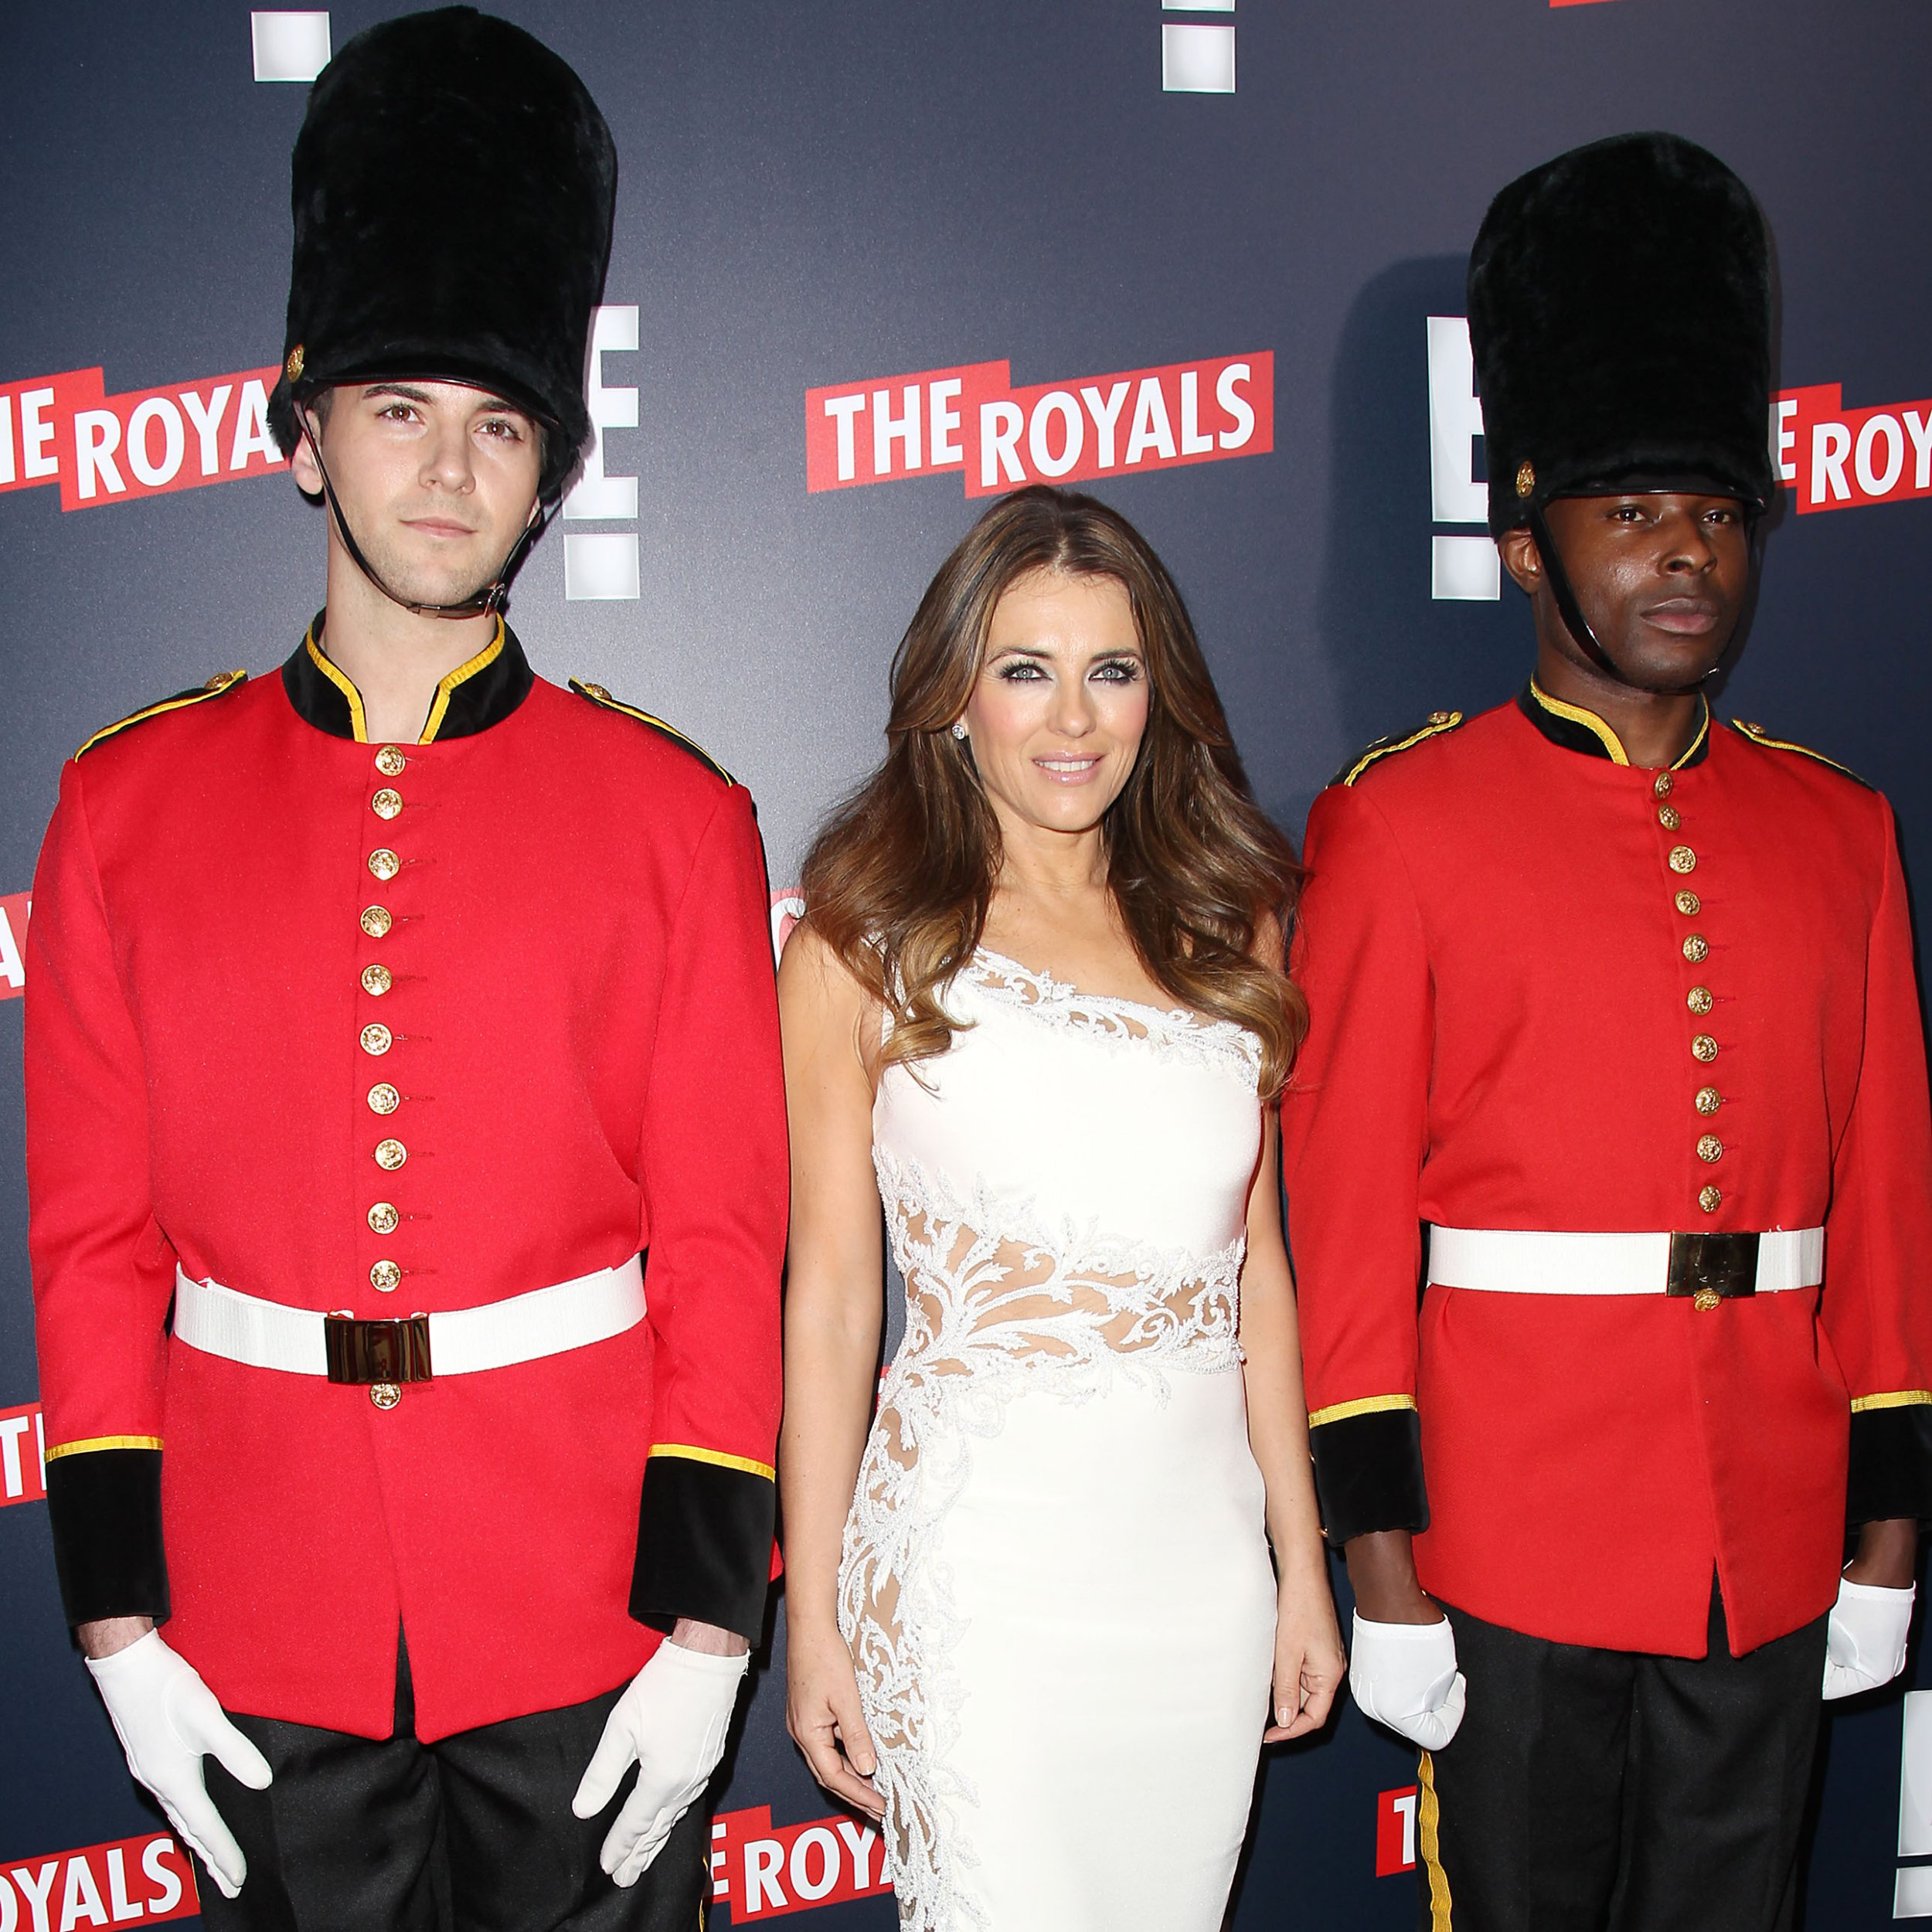 Liz Hurley's show The Royals has been cancelled